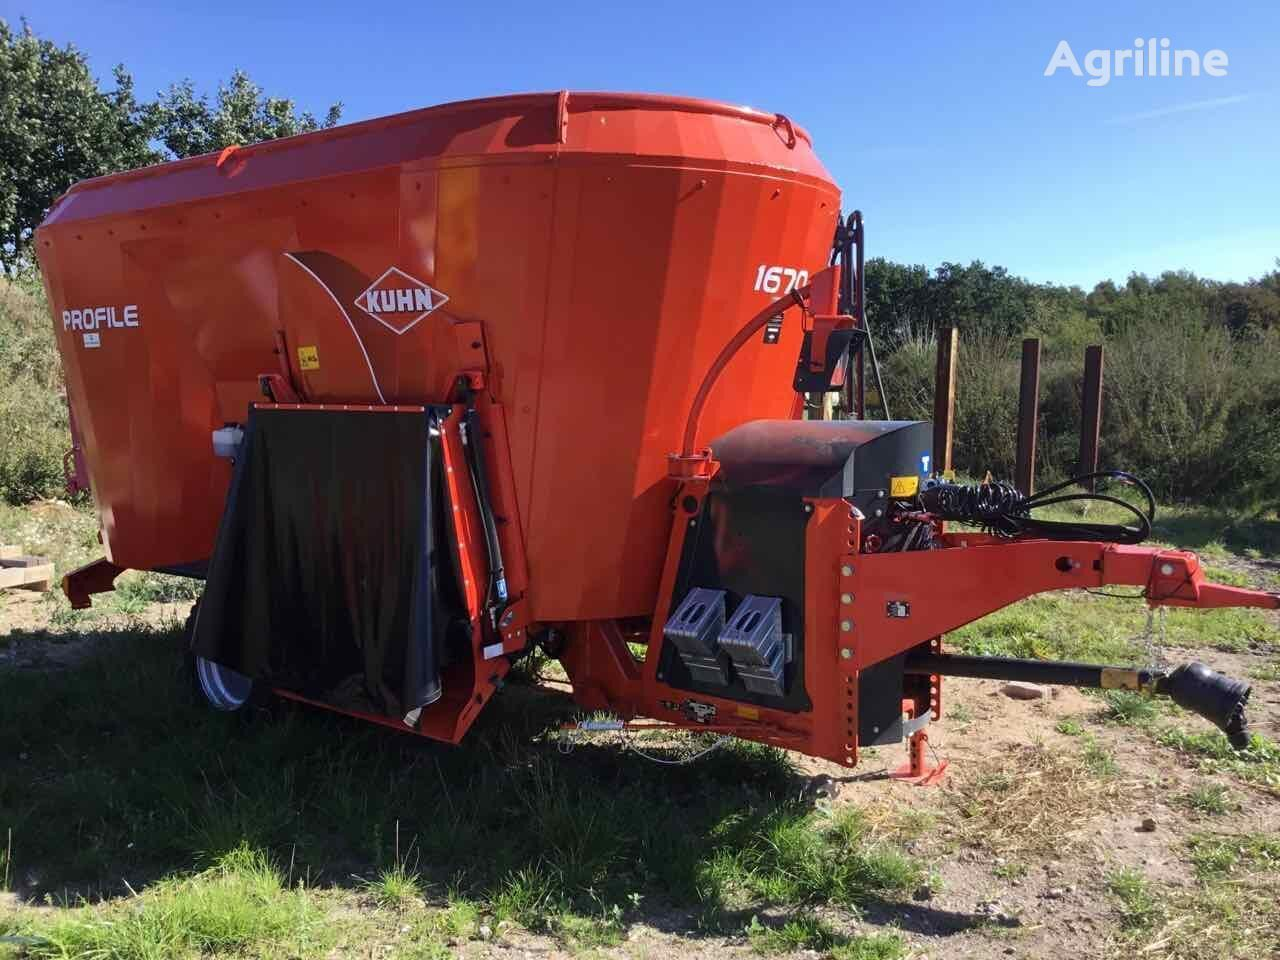 new KUHN PROFILE 1670 SELECT feed mixer